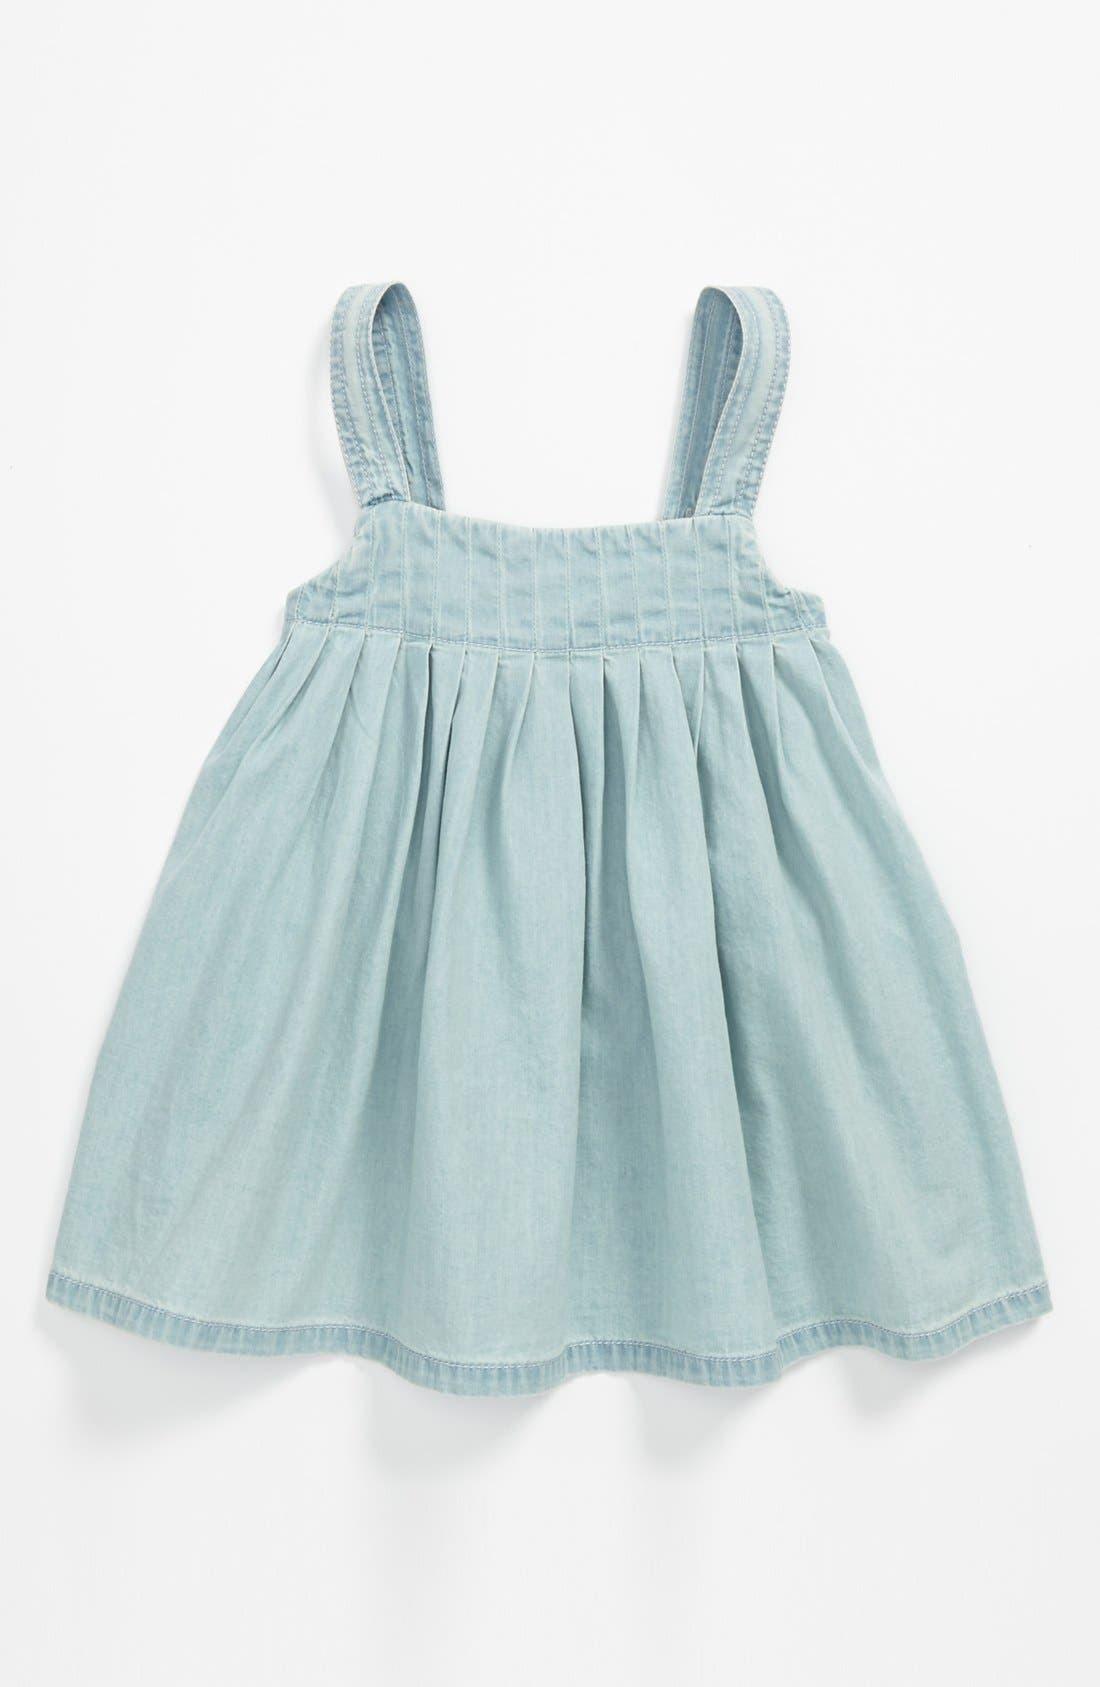 Alternate Image 1 Selected - Tucker + Tate 'Carlie' Pleated Denim Tank Top (Toddler)